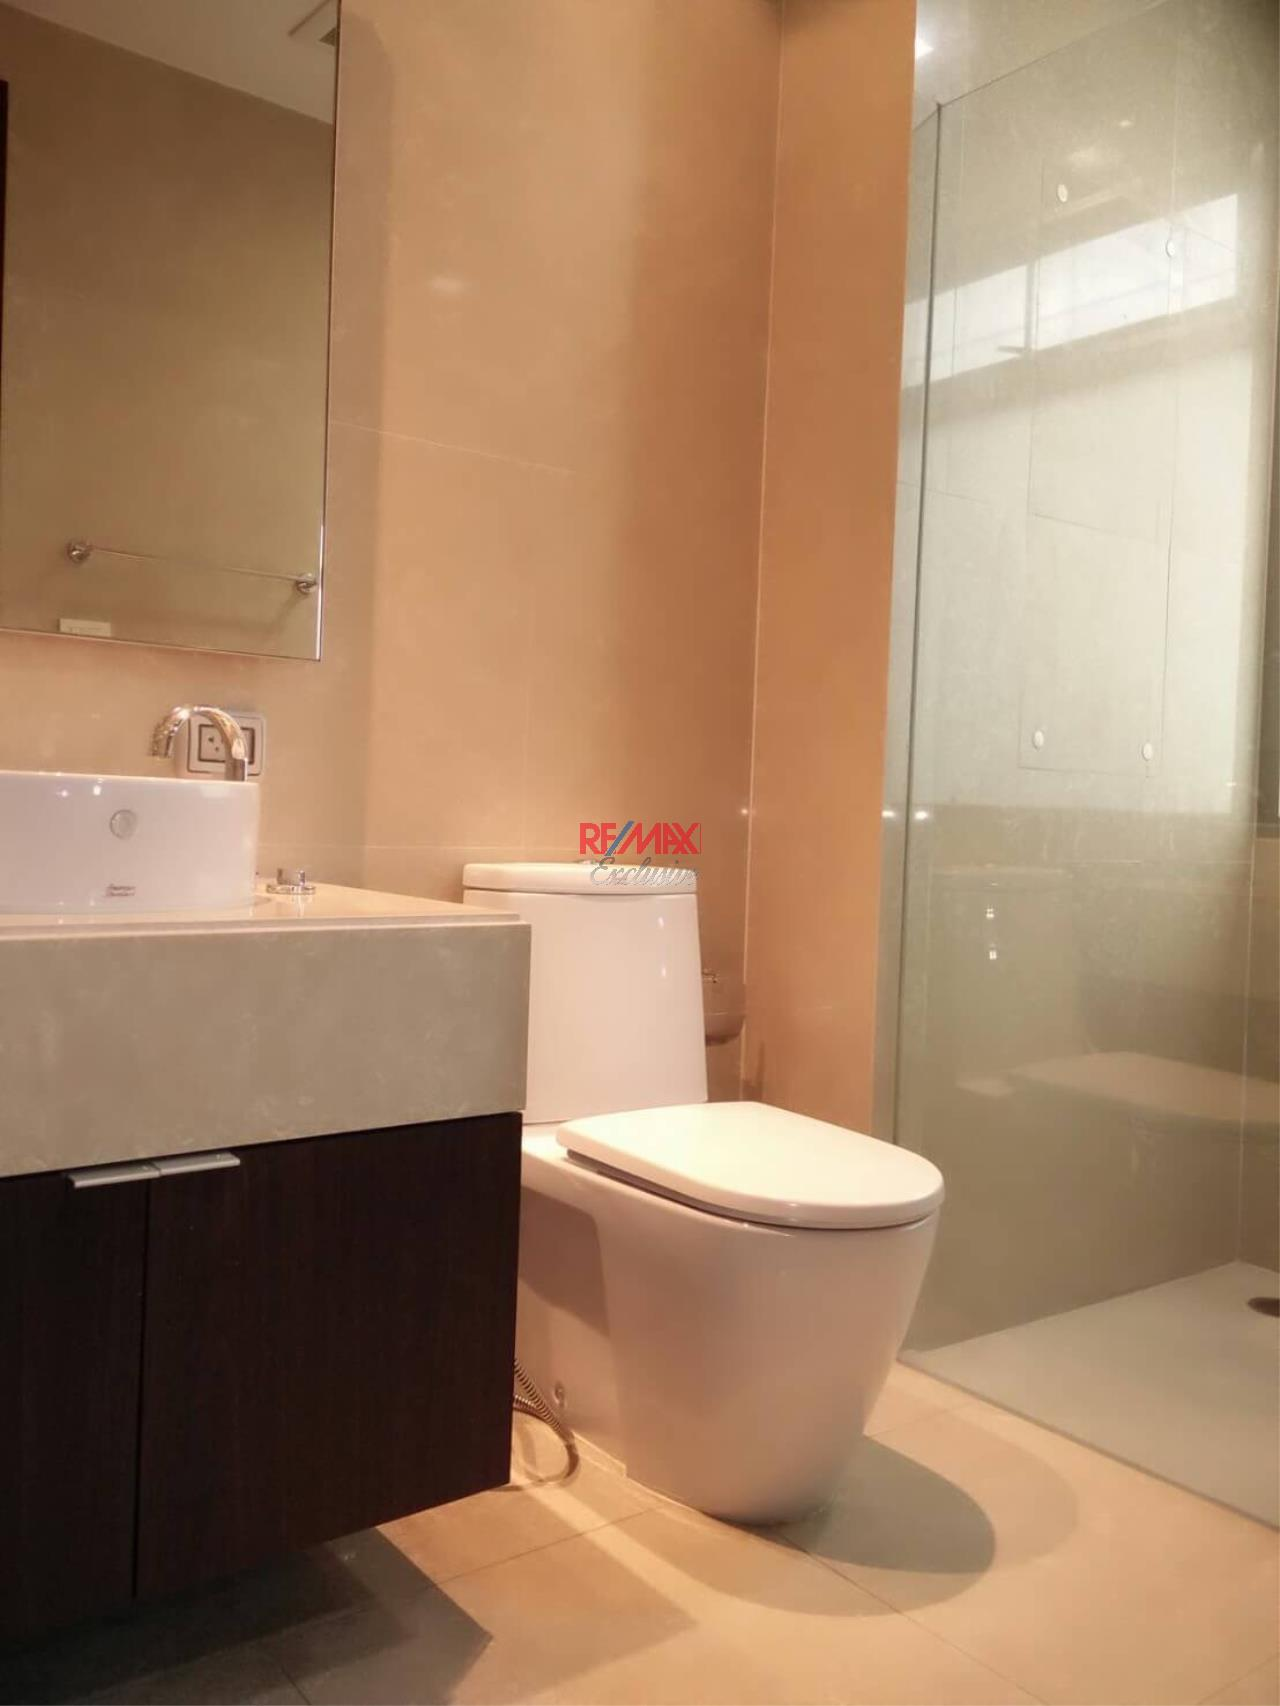 RE/MAX Exclusive Agency's The Madison Condo 2 Bedrooms 139 Sqm., For Sale With Tenant 24,000 000 THB!!  18